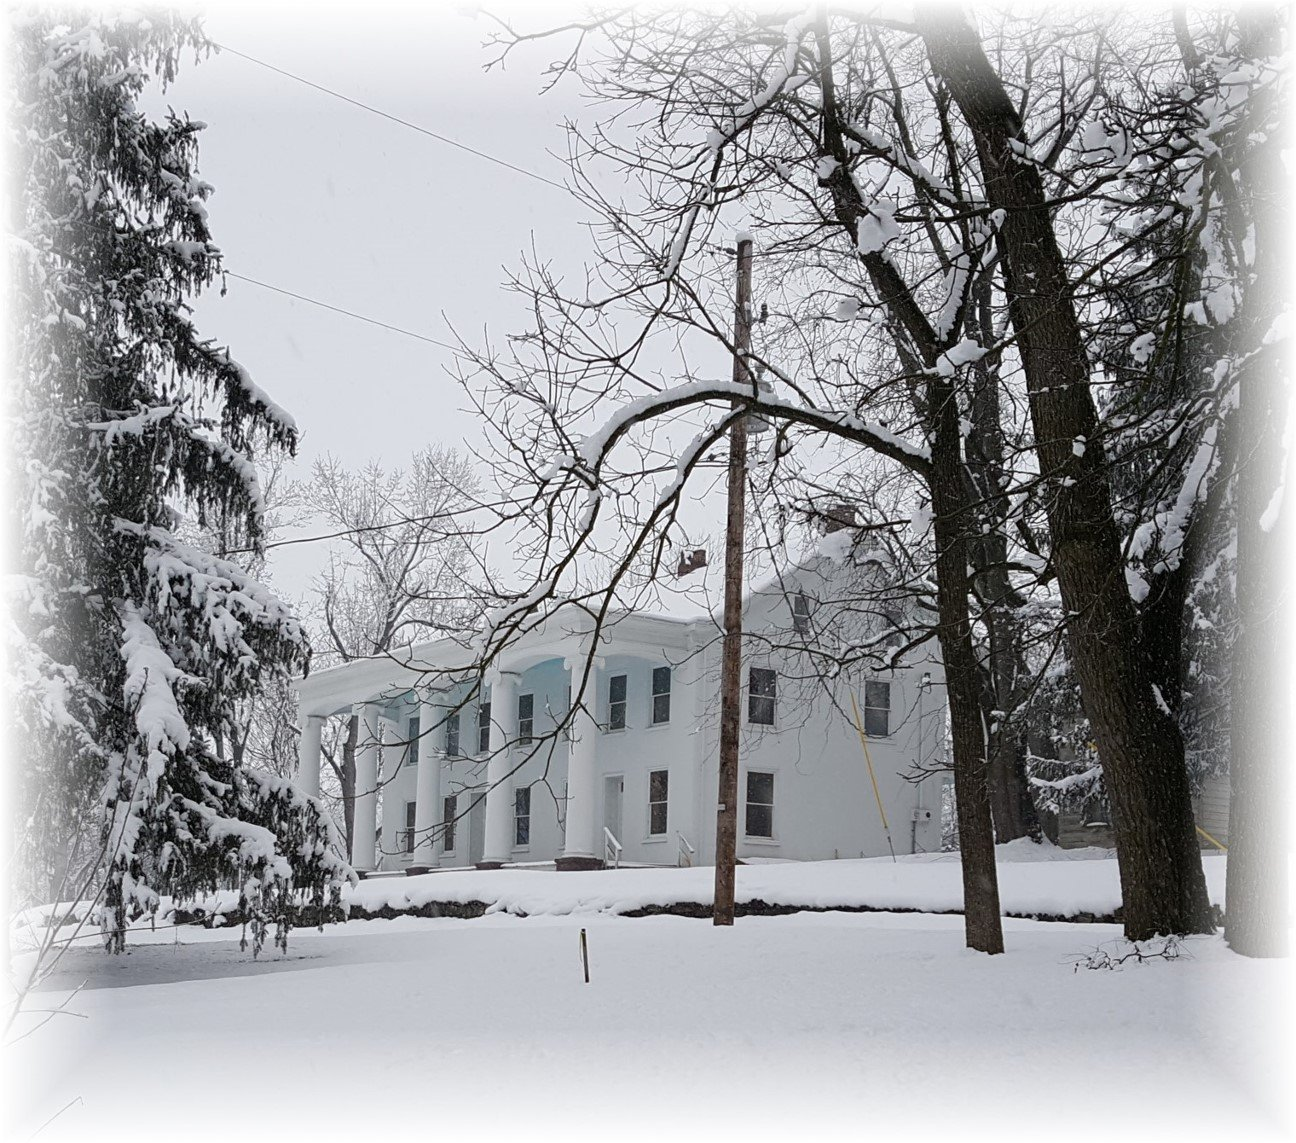 The plantation's mansion and grounds under a blanket of snow.